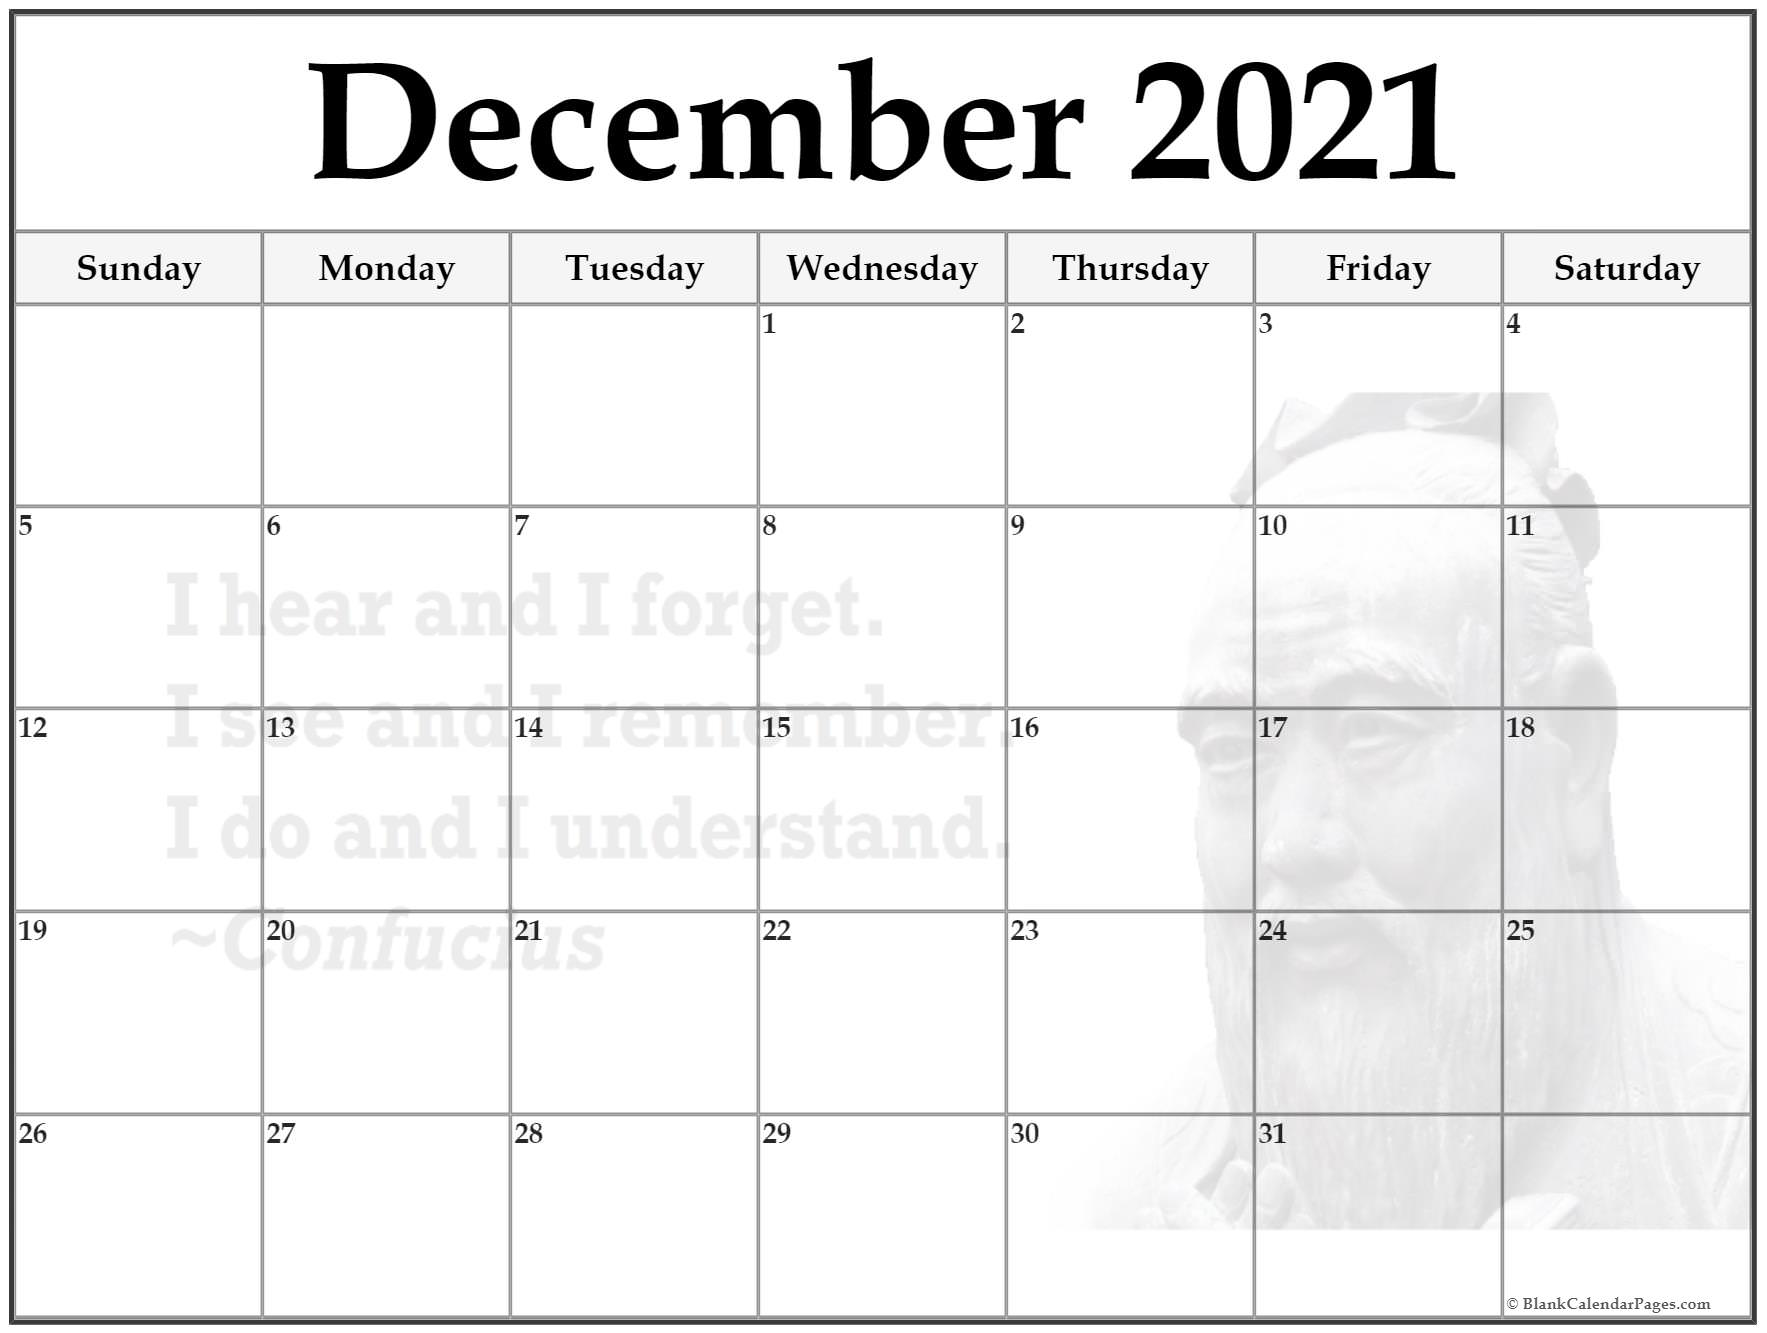 December 2021 monthly calendar template. I hear and I forget.I see and I remember.I do and I understand.~Confucius